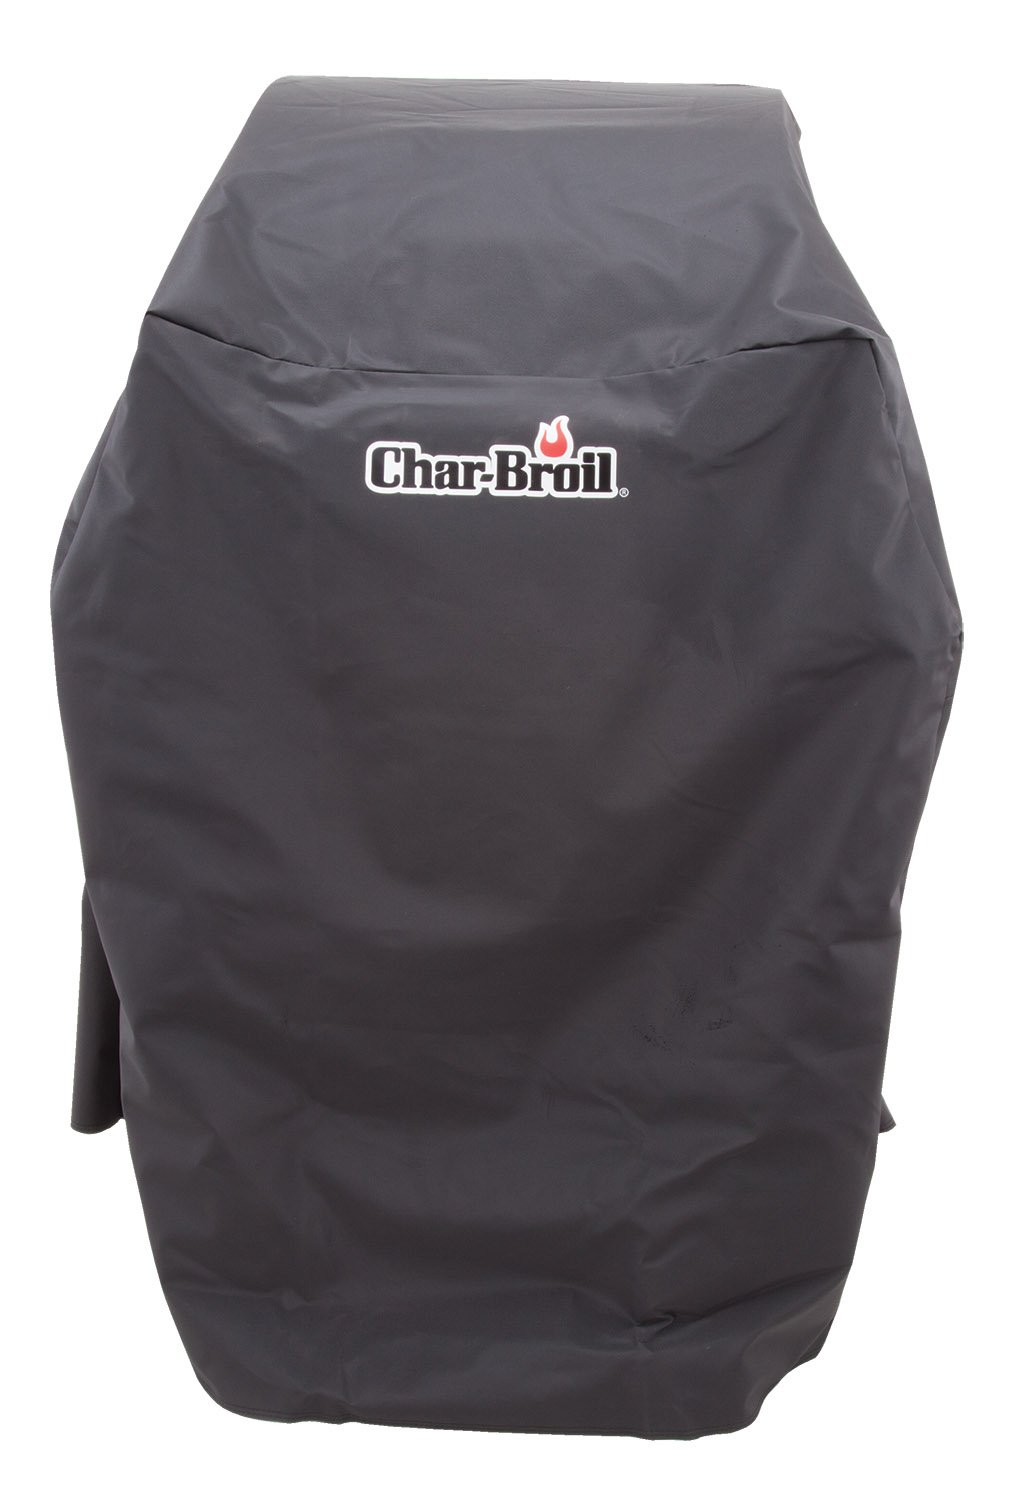 Char-Broil 2 Burner Rip-Stop Cover by Char-Broil